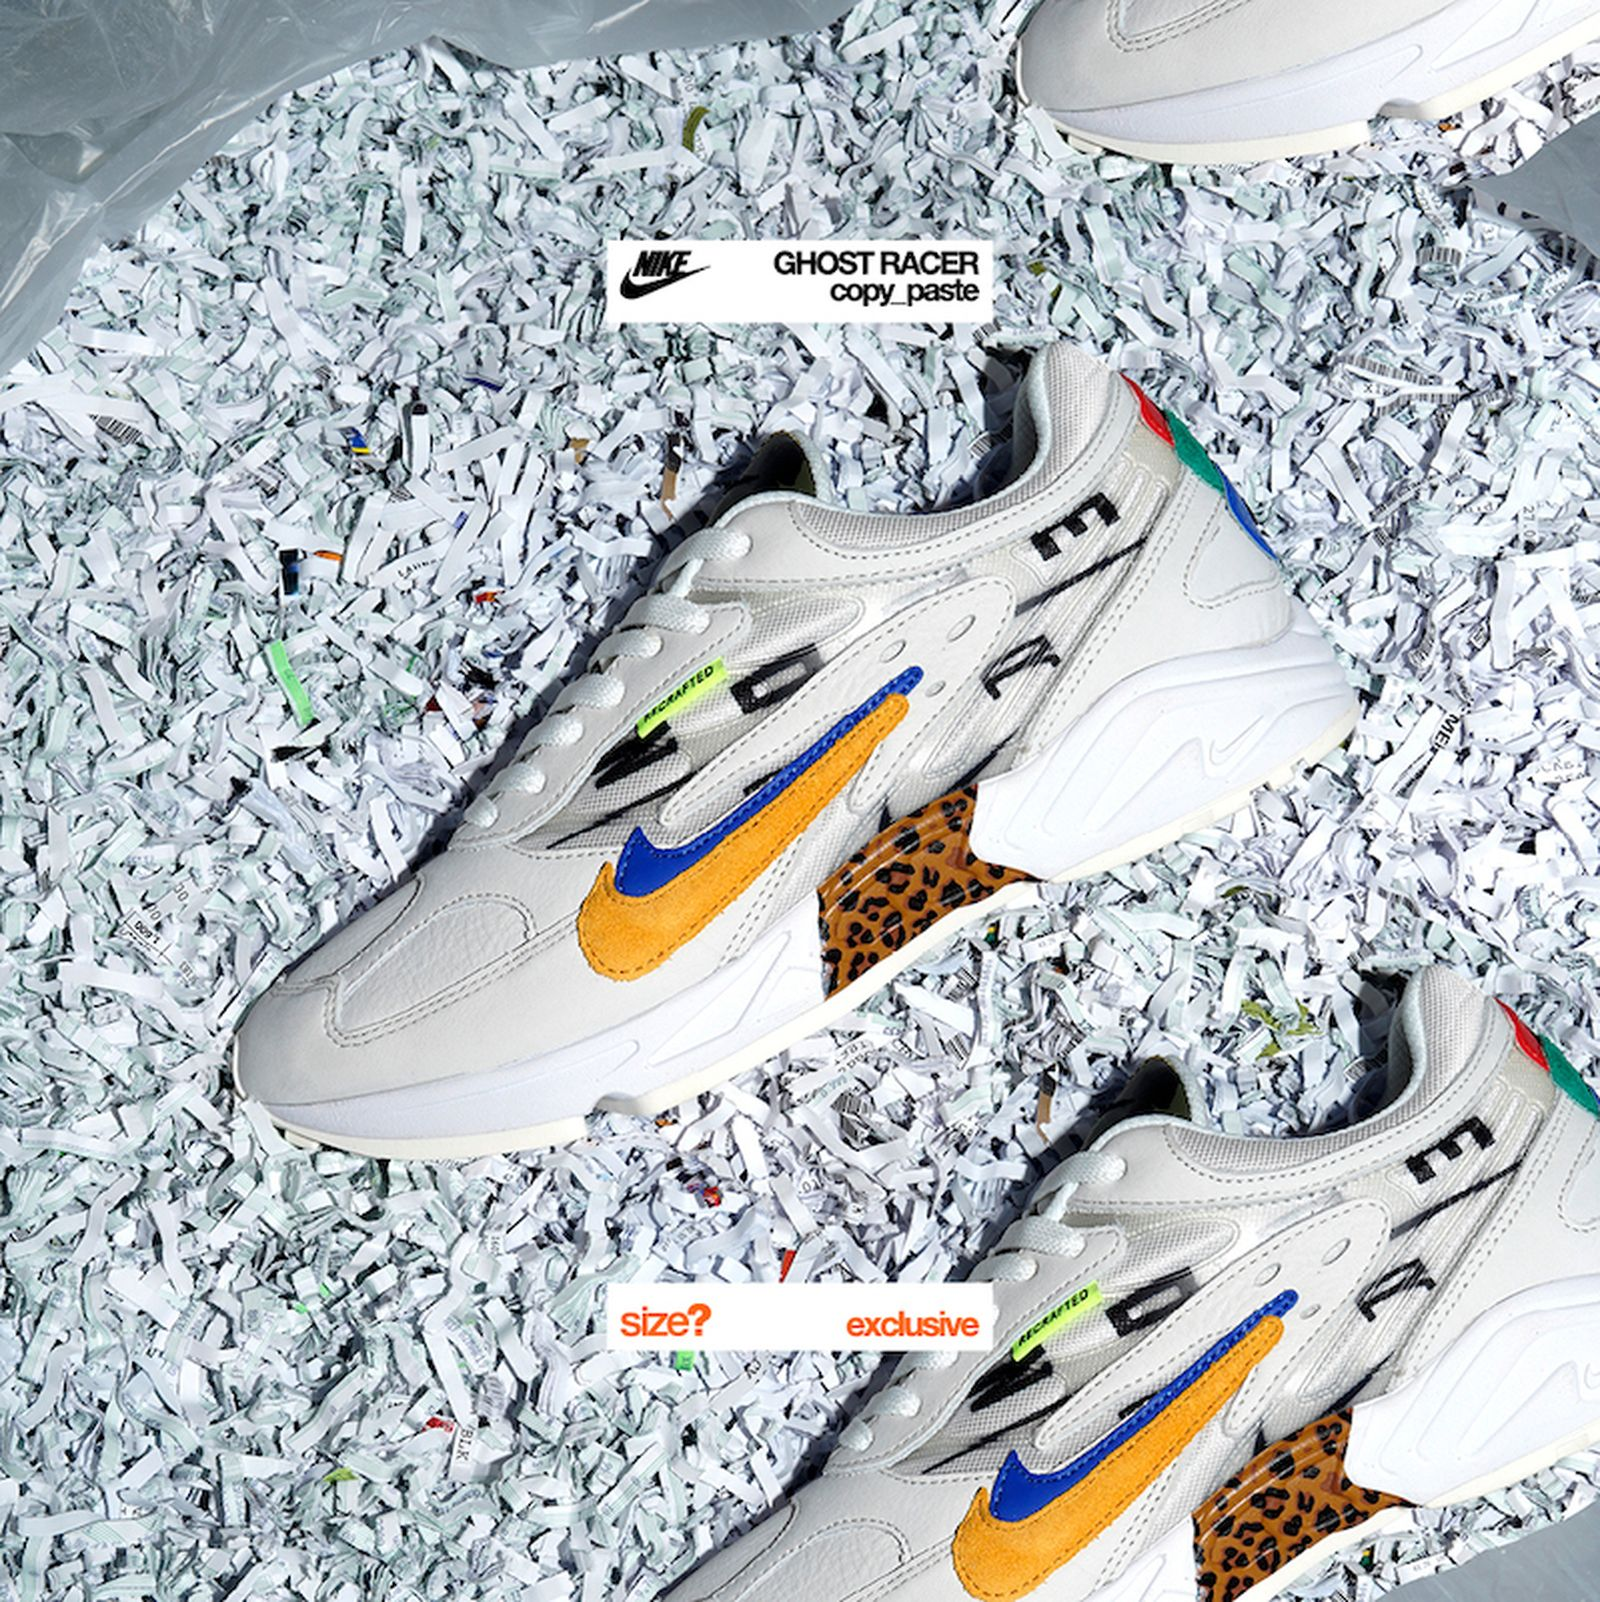 Size Nike Ghost Racer Copy Paste